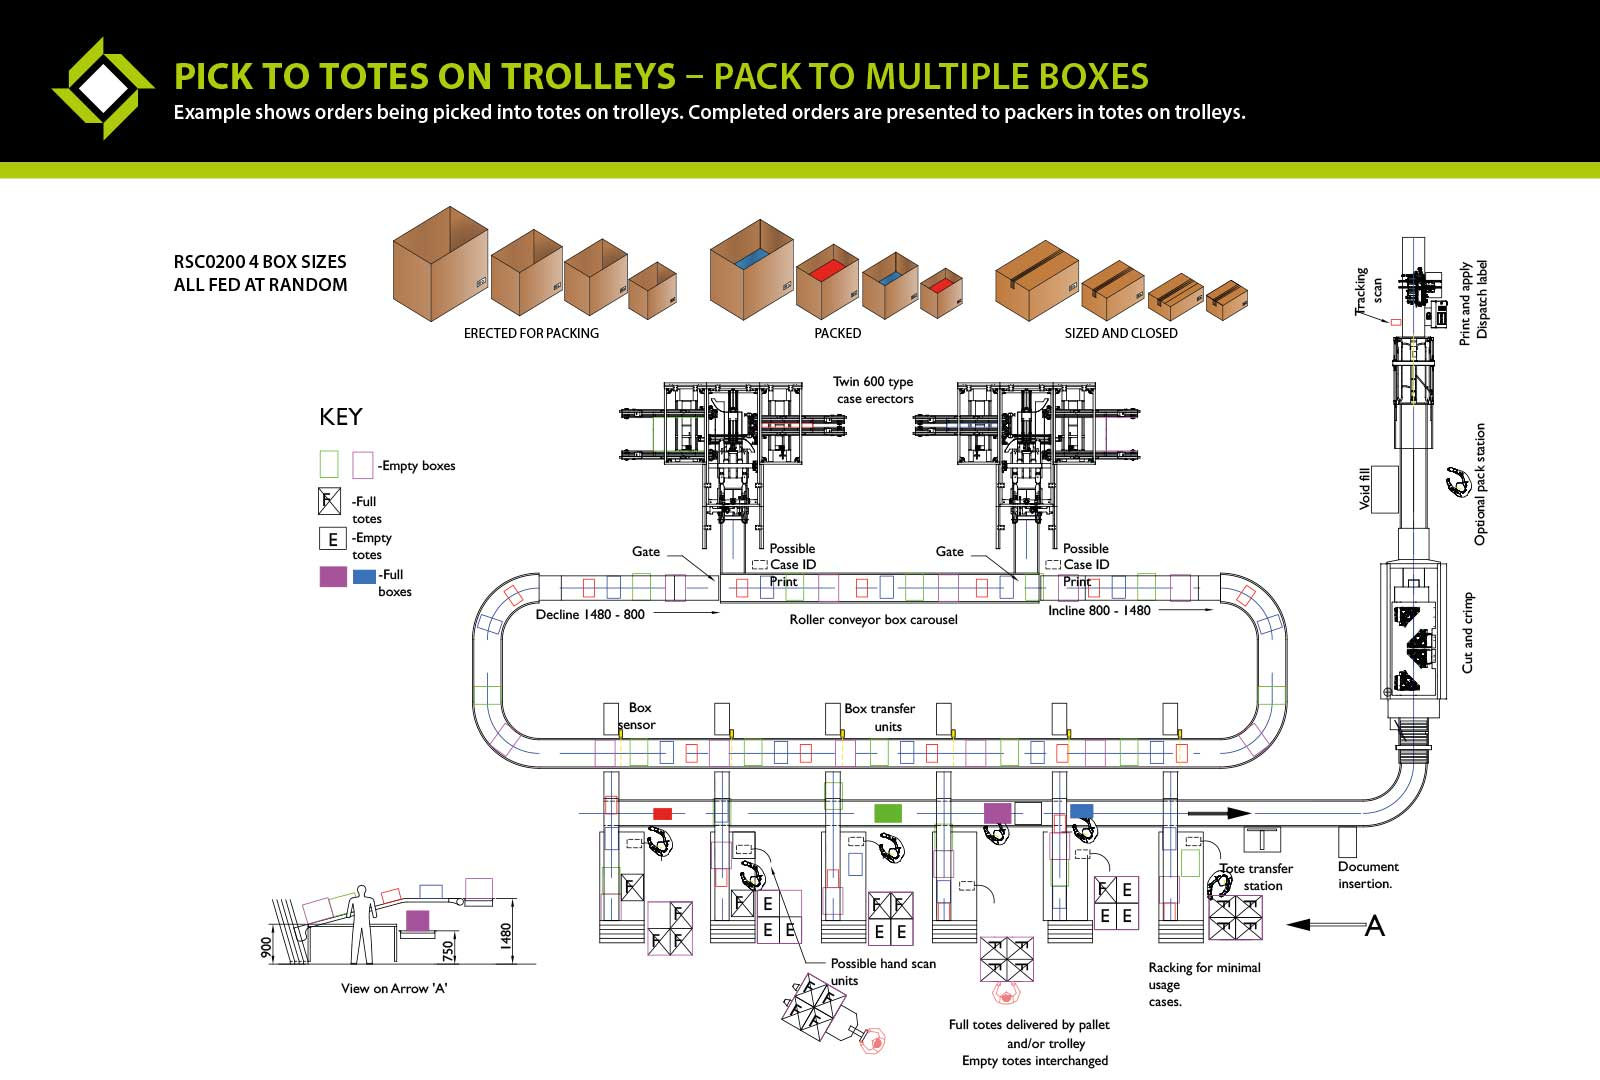 Pick to Totes on Trolleys Pack to Multiple Boxes ecom packaging line